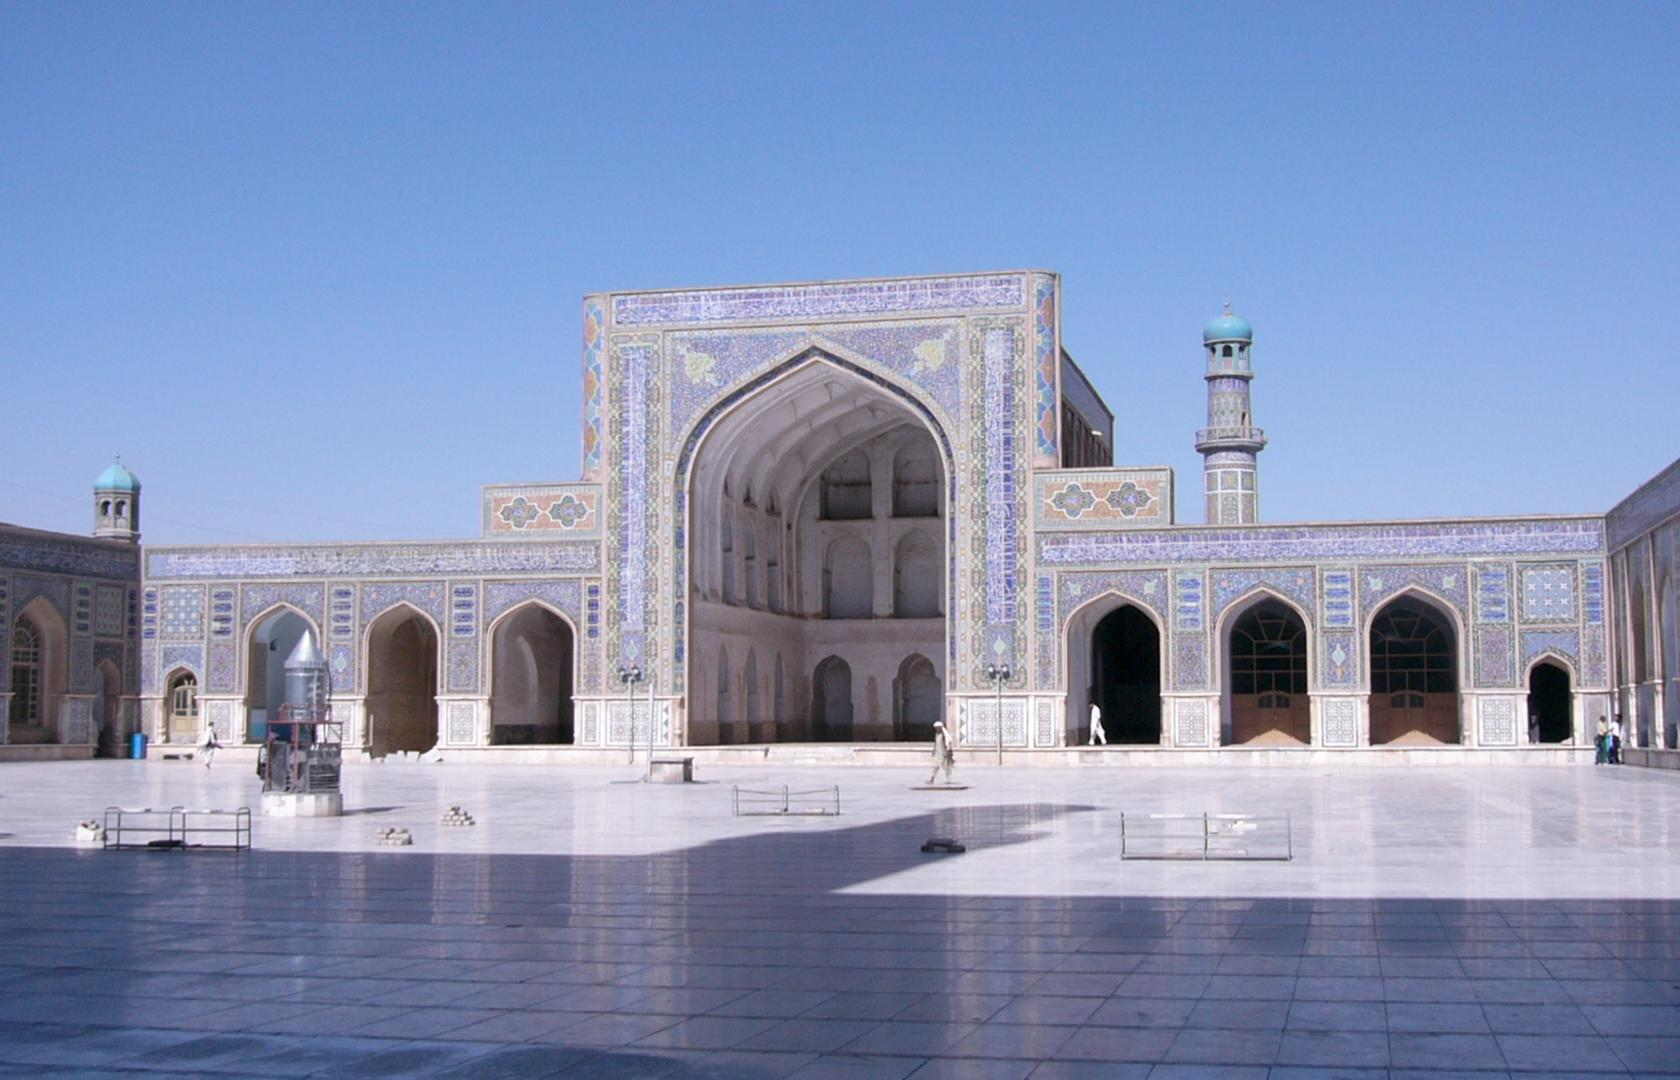 Herat Masjidi Jami courtyard by Sven Dirks, Wien via Wikimedia Commons